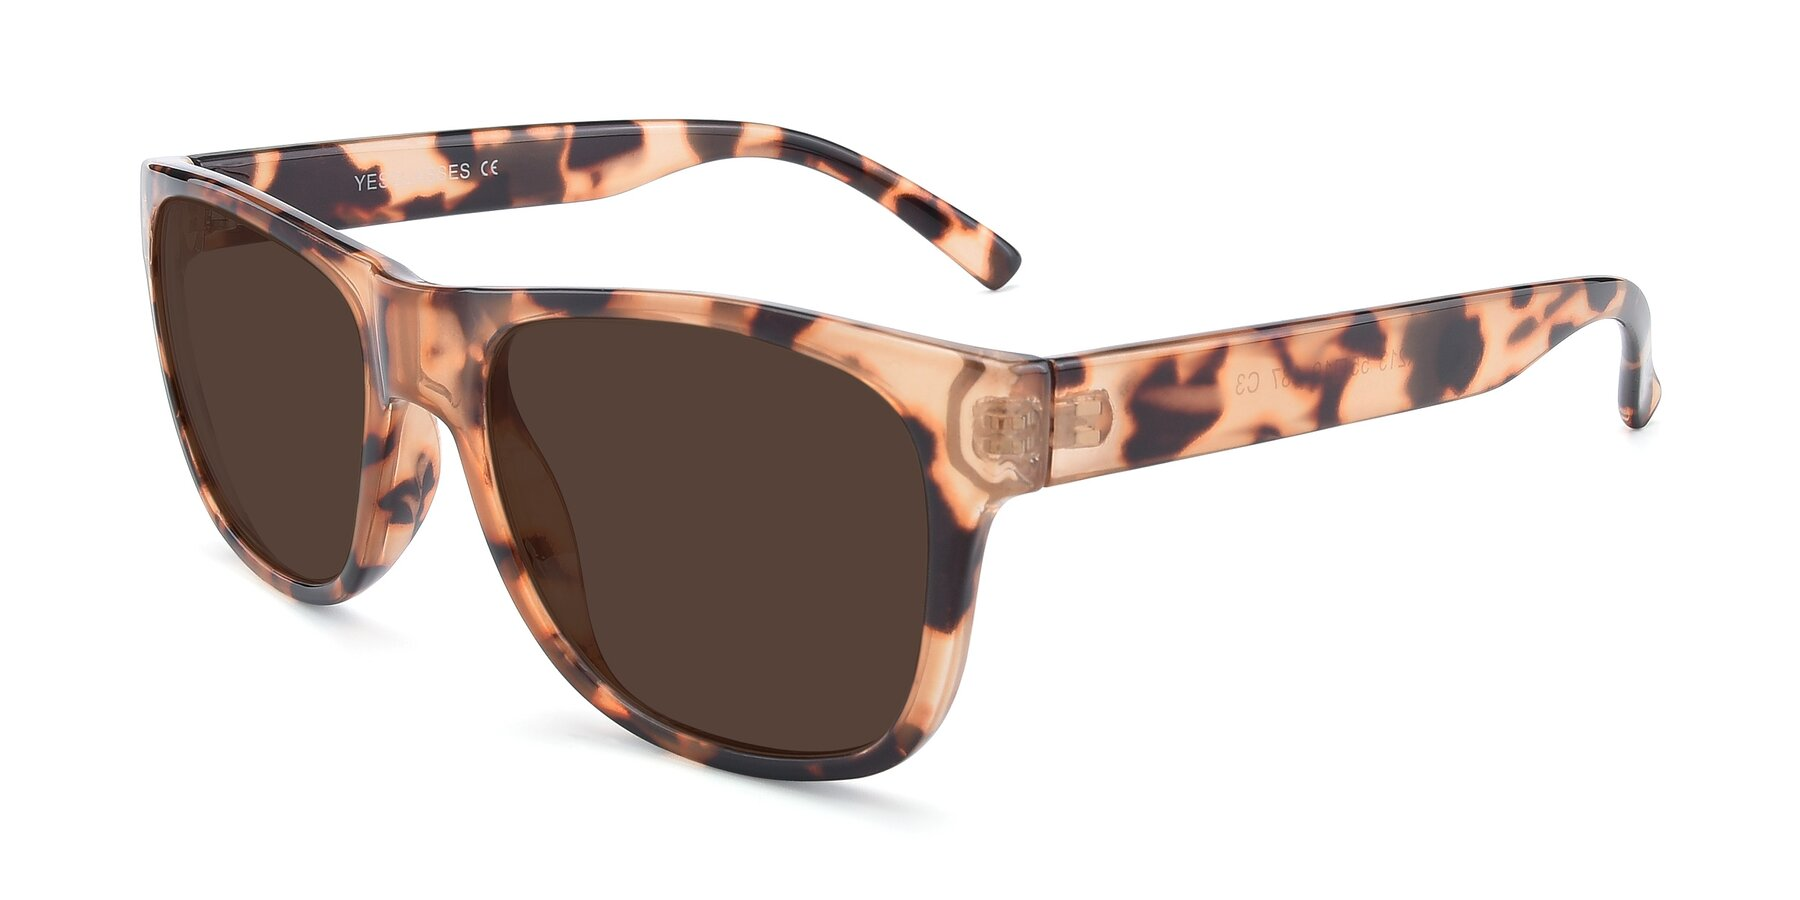 Angle of SSR213 in Translucent Tortoise with Brown Tinted Lenses